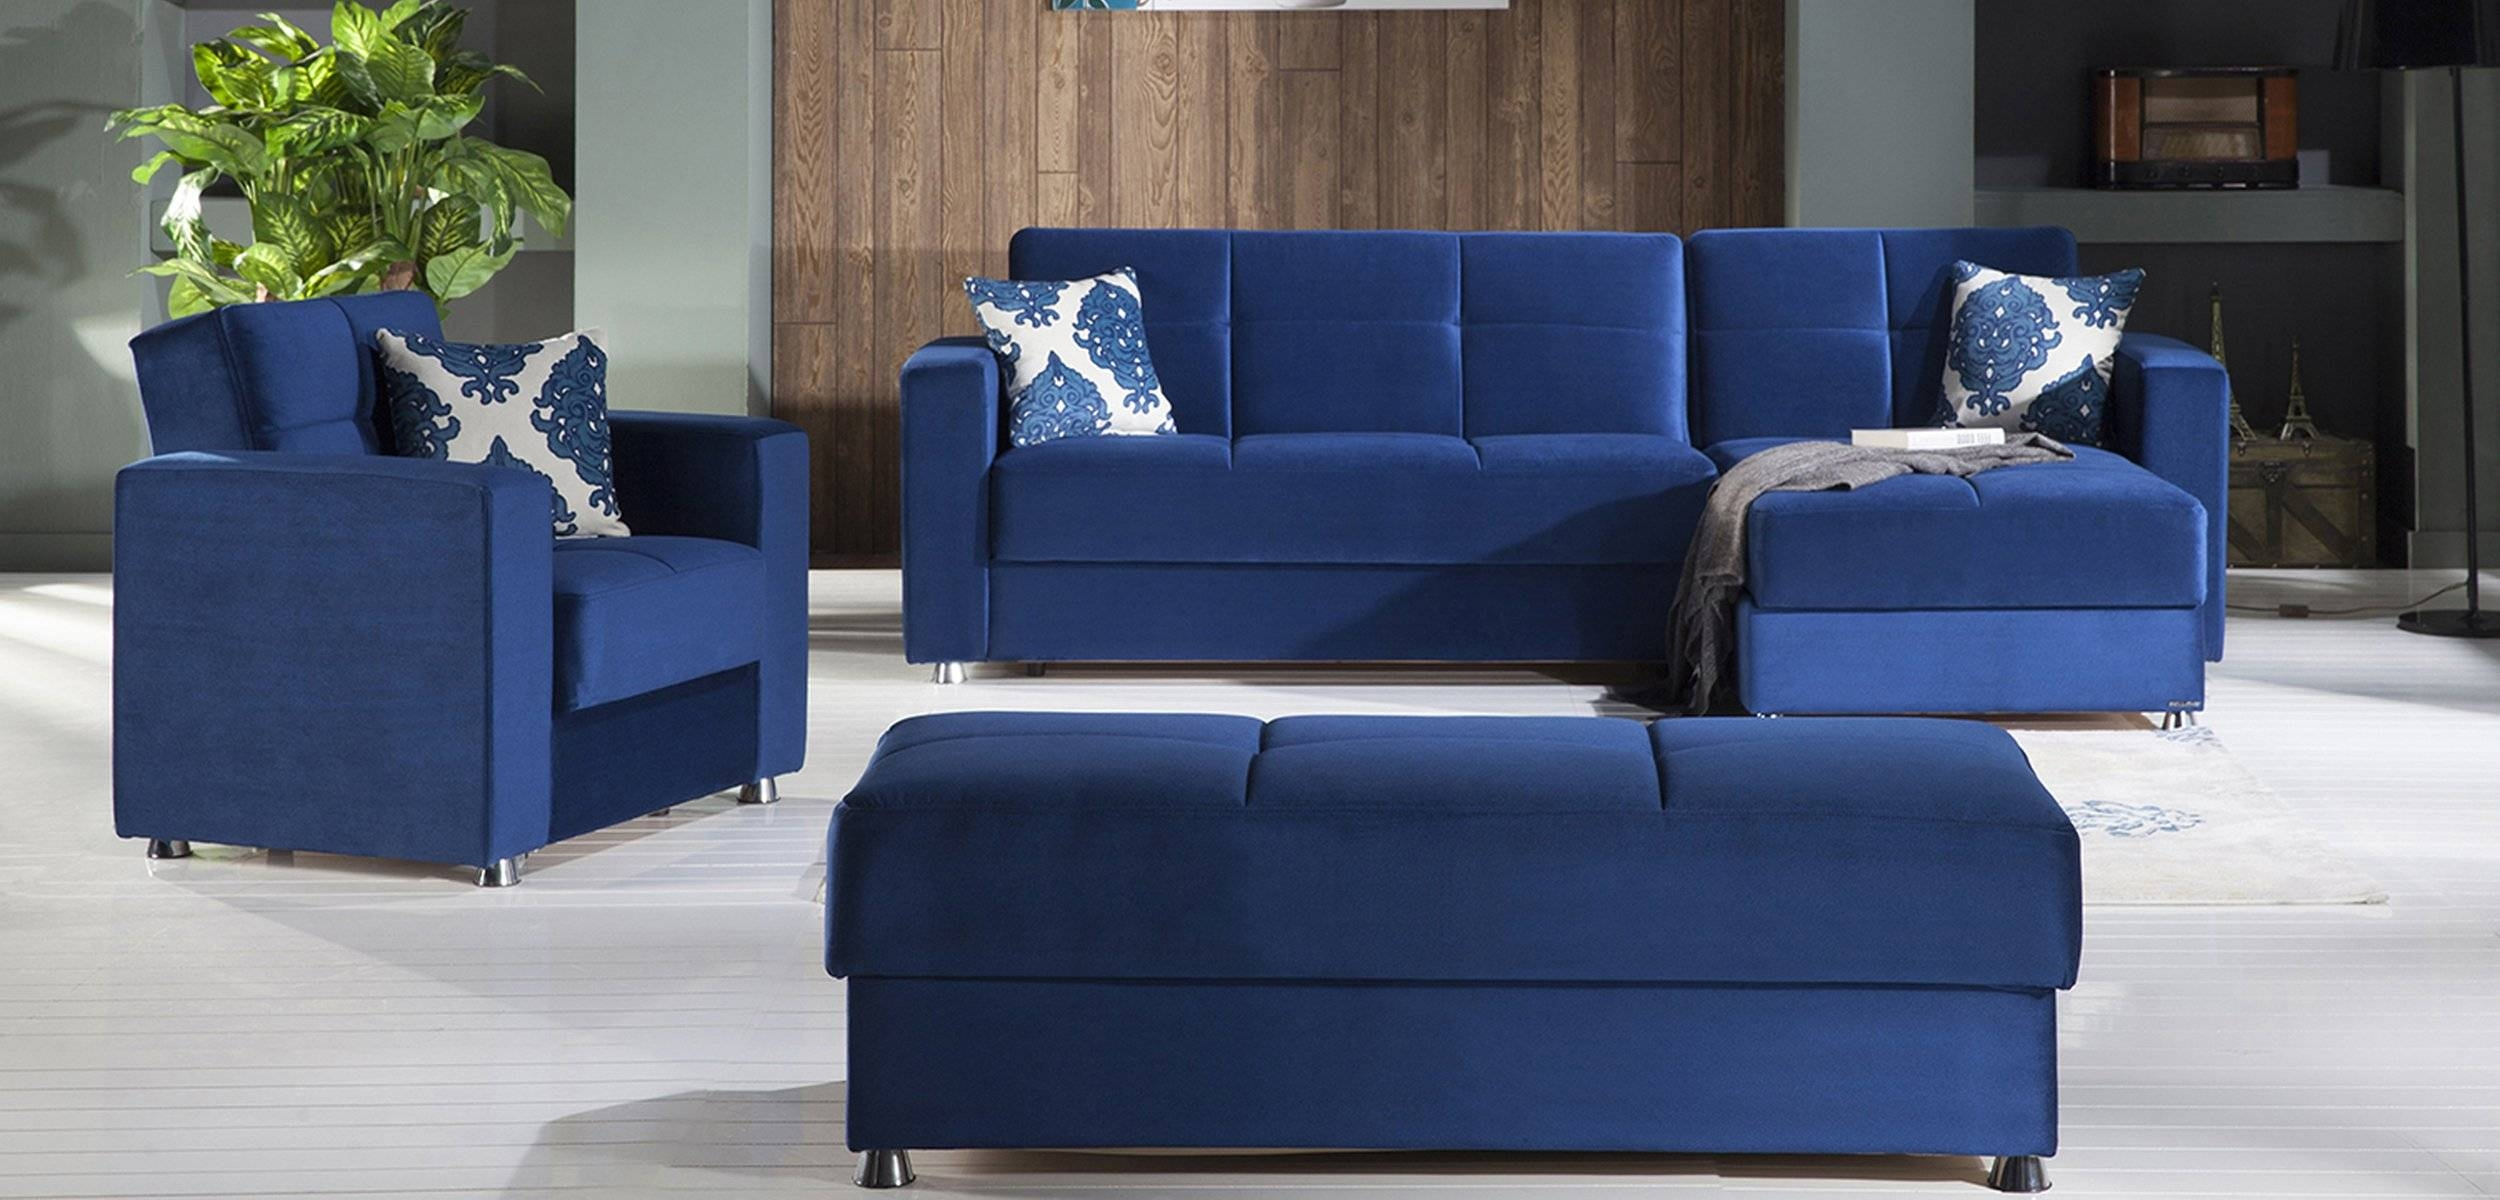 Elegant Roma Navy Sectional Sofasunset regarding Elegant Sectional Sofa (Image 7 of 25)